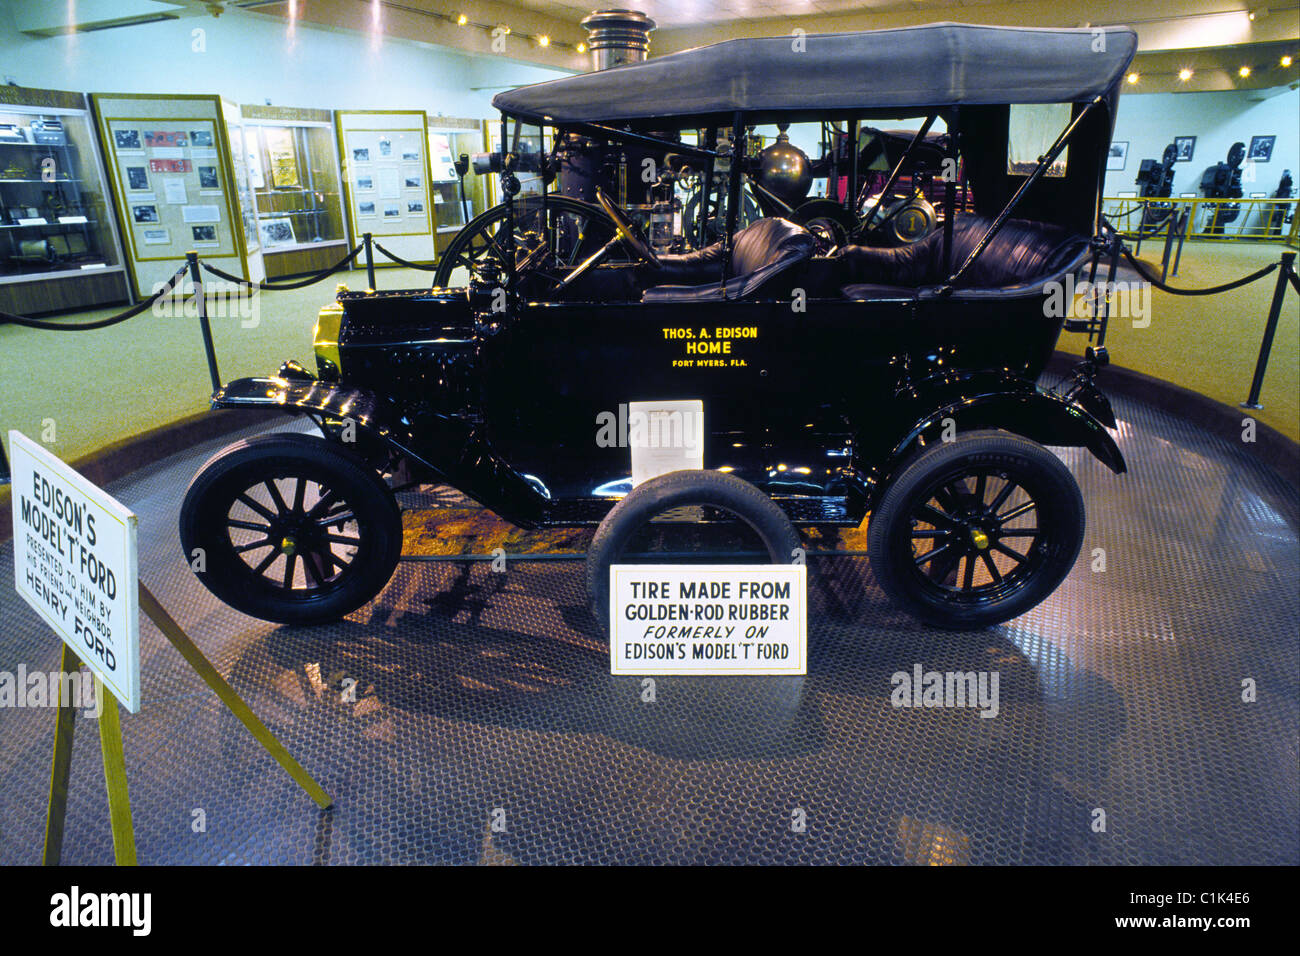 The 1916 model t ford touring car given by henry ford to thomas a edison